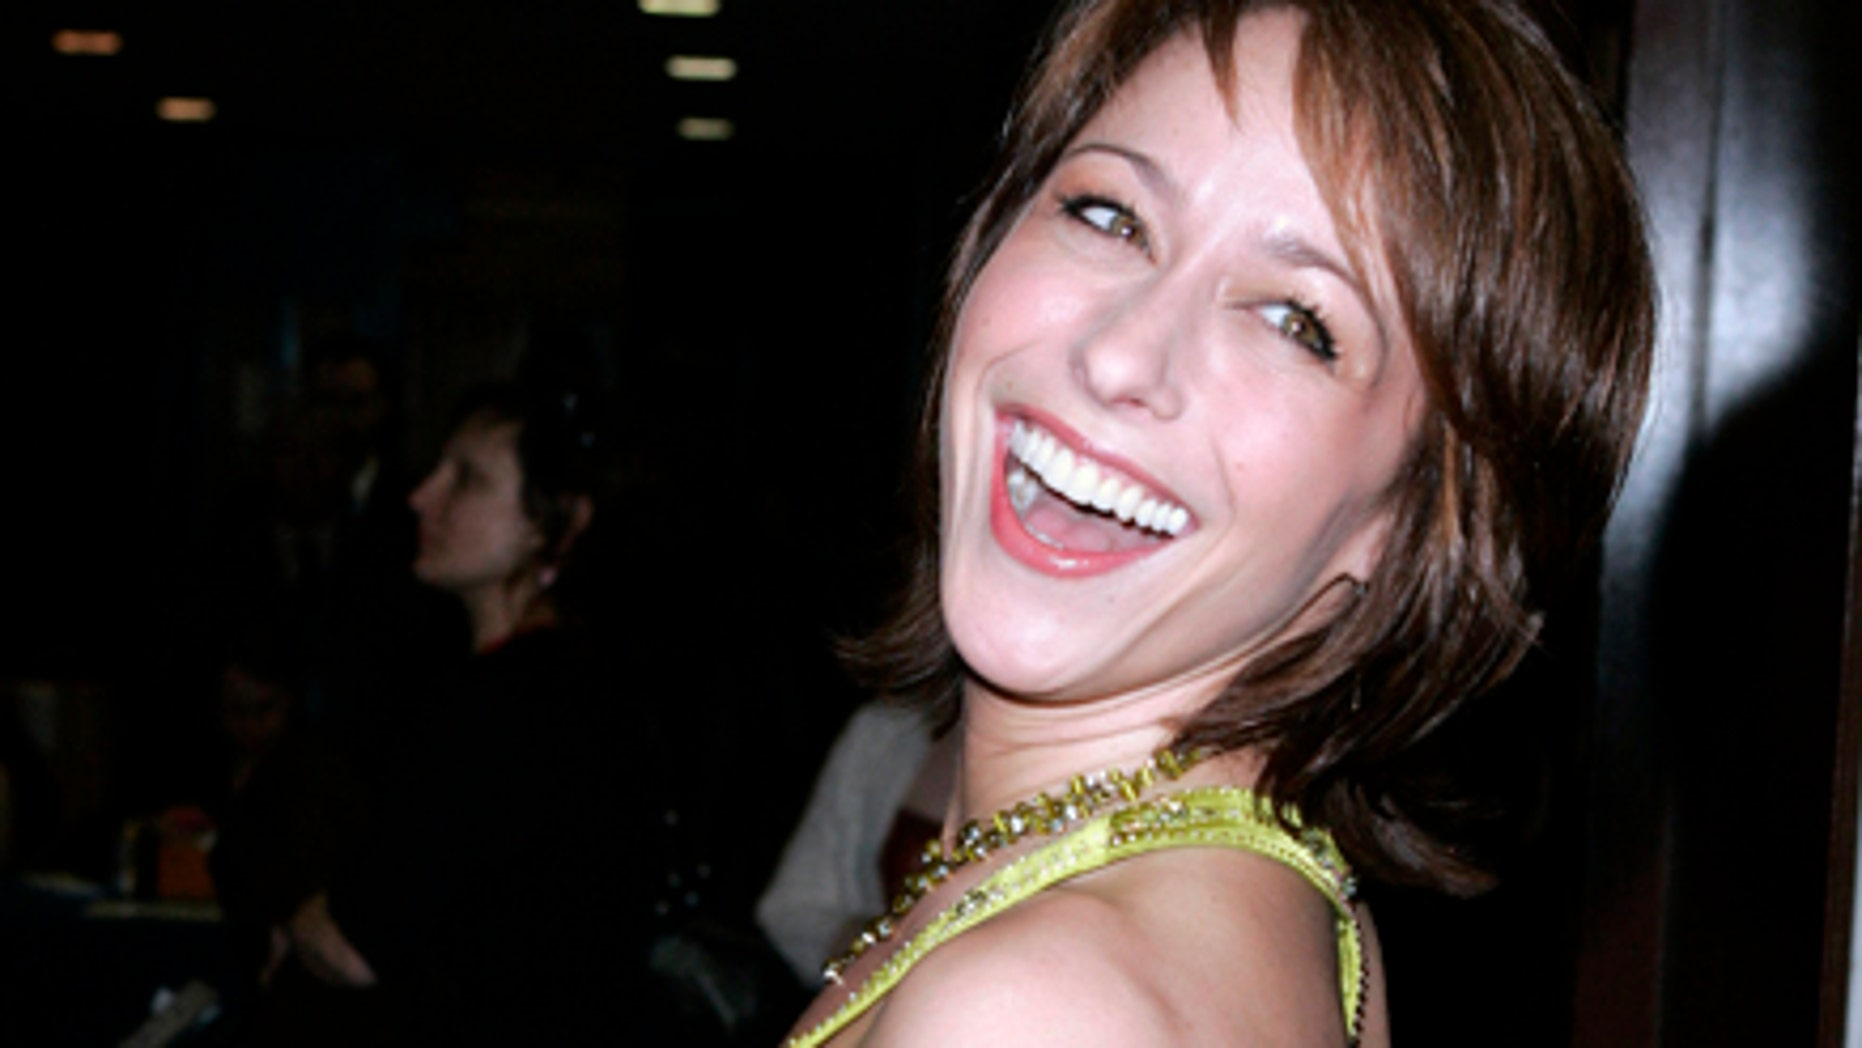 """Actress Paige Davis arrives for the 51st Drama Desk Awards Show in New York May 21, 2006. Davis hosted the TLC show """"Trading Spaces"""" from 2001-2004 and again in 2008. TLC announced the show will be returning in 2018 but did not say who the host the reboot."""